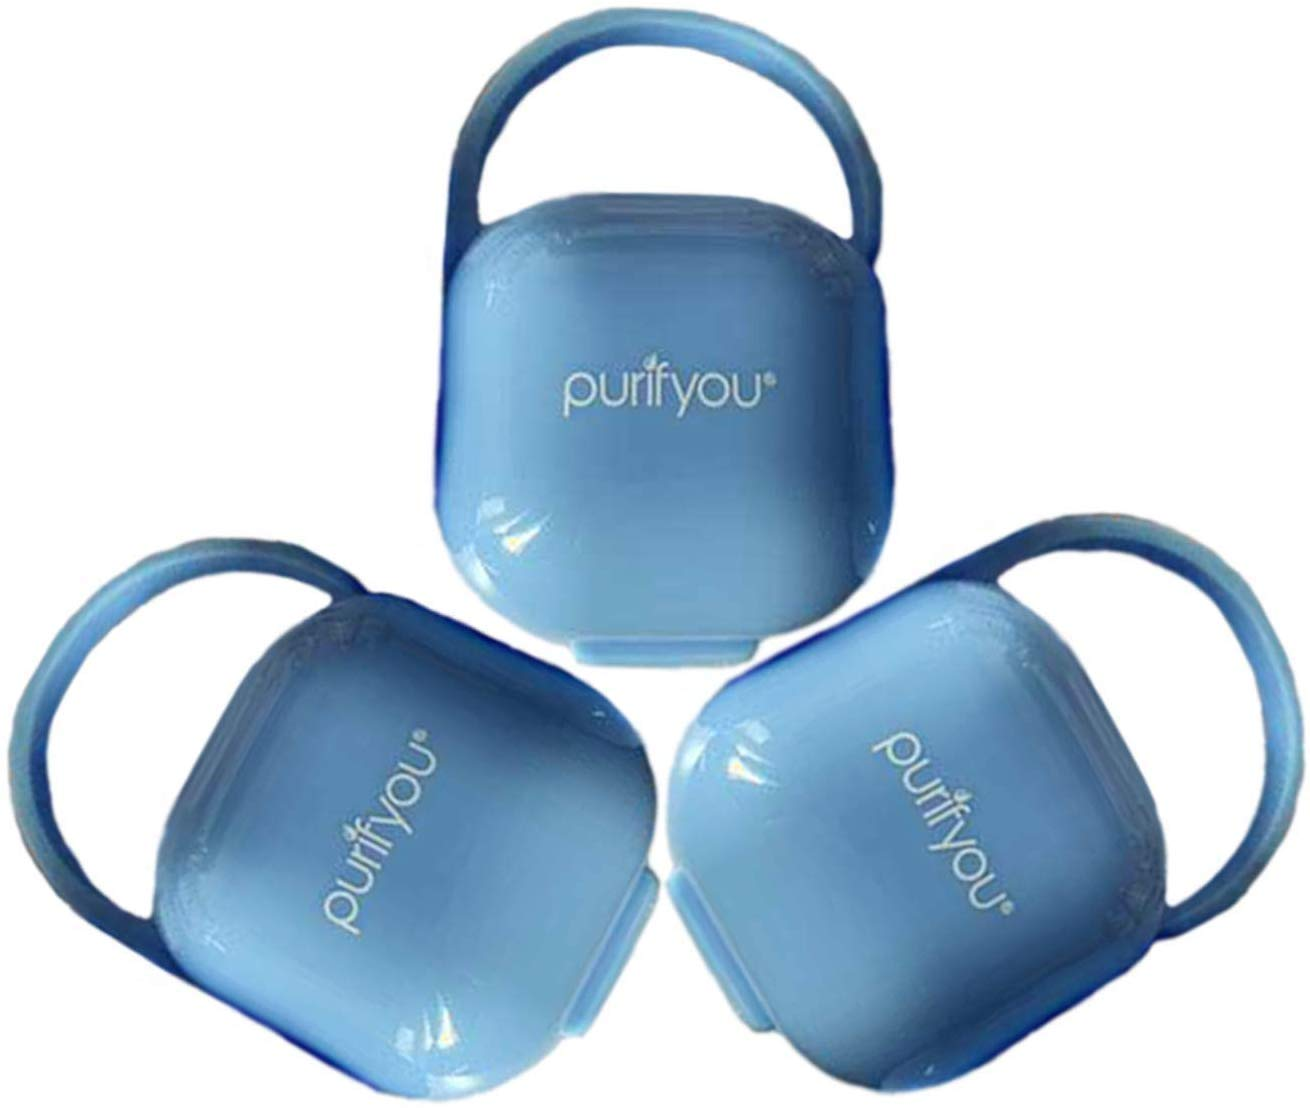 purifyou PurePouch BPA-Free Nipple Shield Case & Pacifier Case, Set of 3, with Free Mesh Sack (Set of 3, Baby Blue)